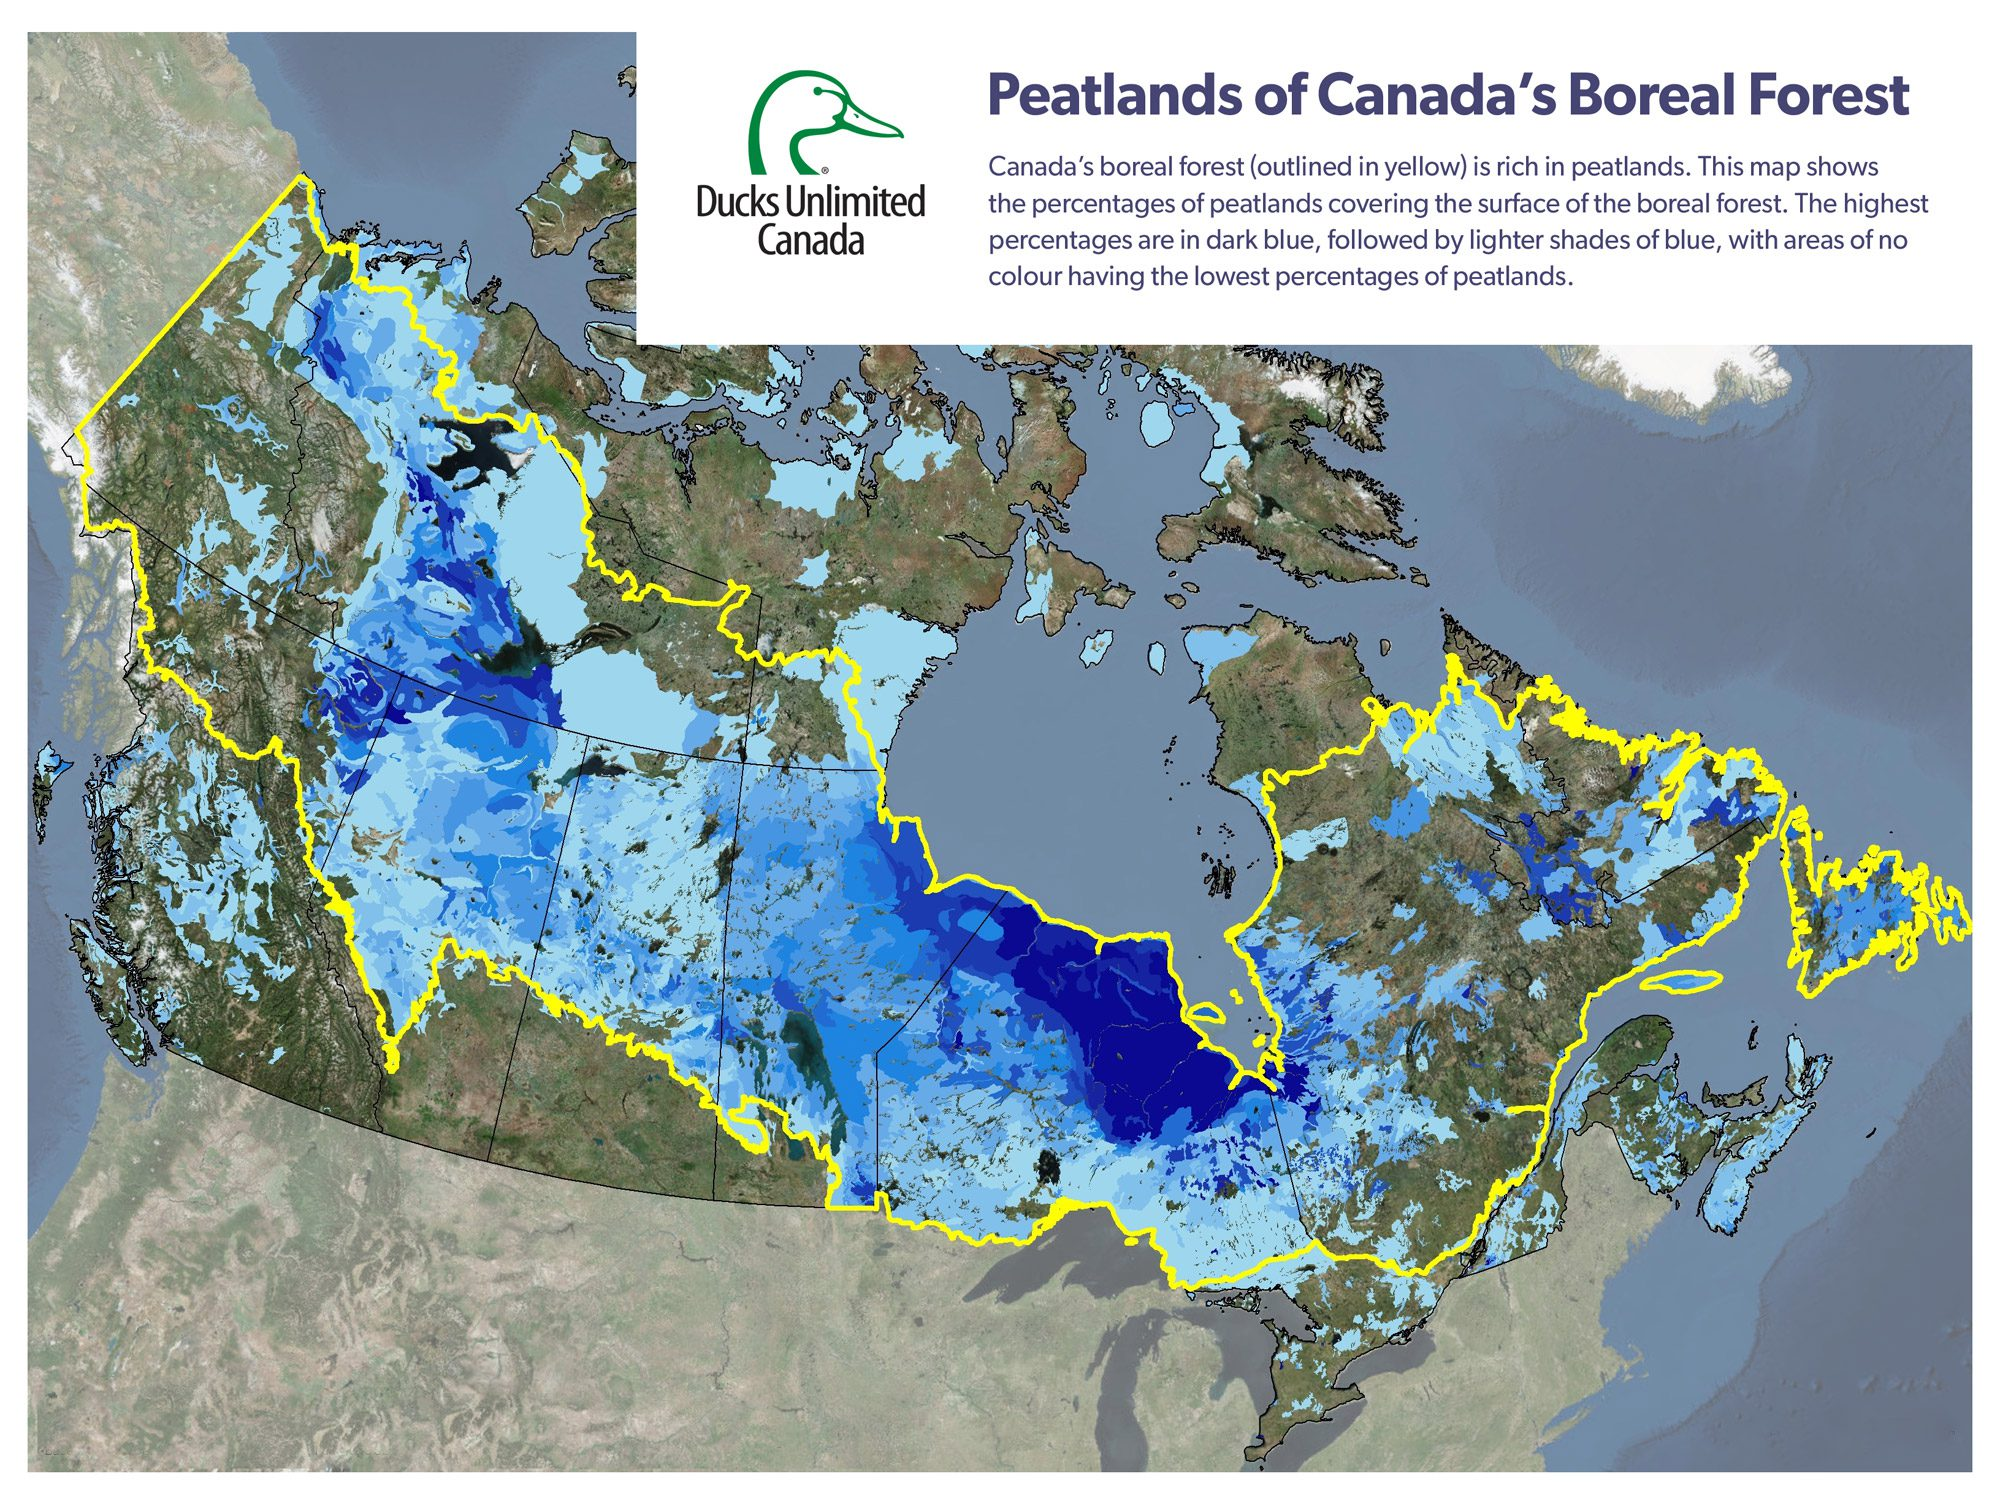 Plumbing the depths of Canada's peatlands – one of the world's largest carbon sinks